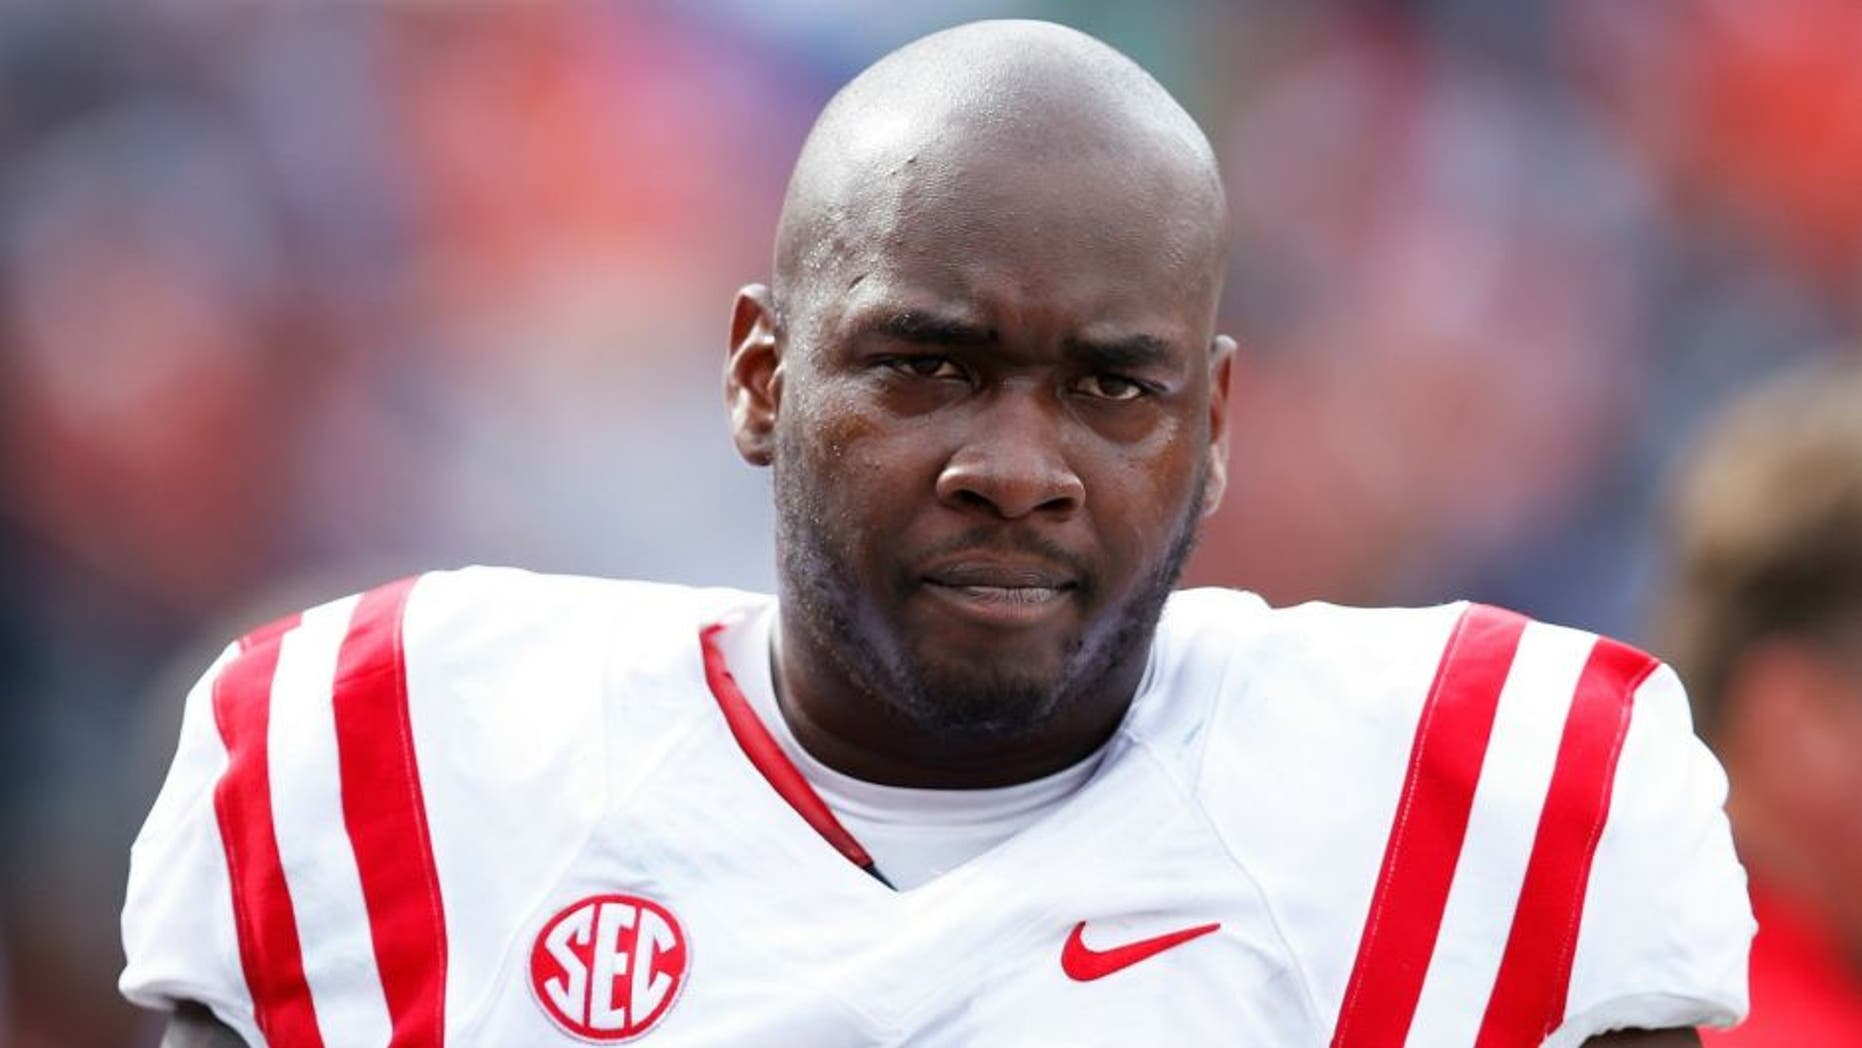 AUBURN, AL - OCTOBER 31: Laremy Tunsil #78 of the Ole Miss Rebels looks on during a game against the Auburn Tigers at Jordan-Hare Stadium on October 31, 2015 in Auburn, Alabama. Ole Miss defeated Auburn 27-19. (Photo by Joe Robbins/Getty Images)